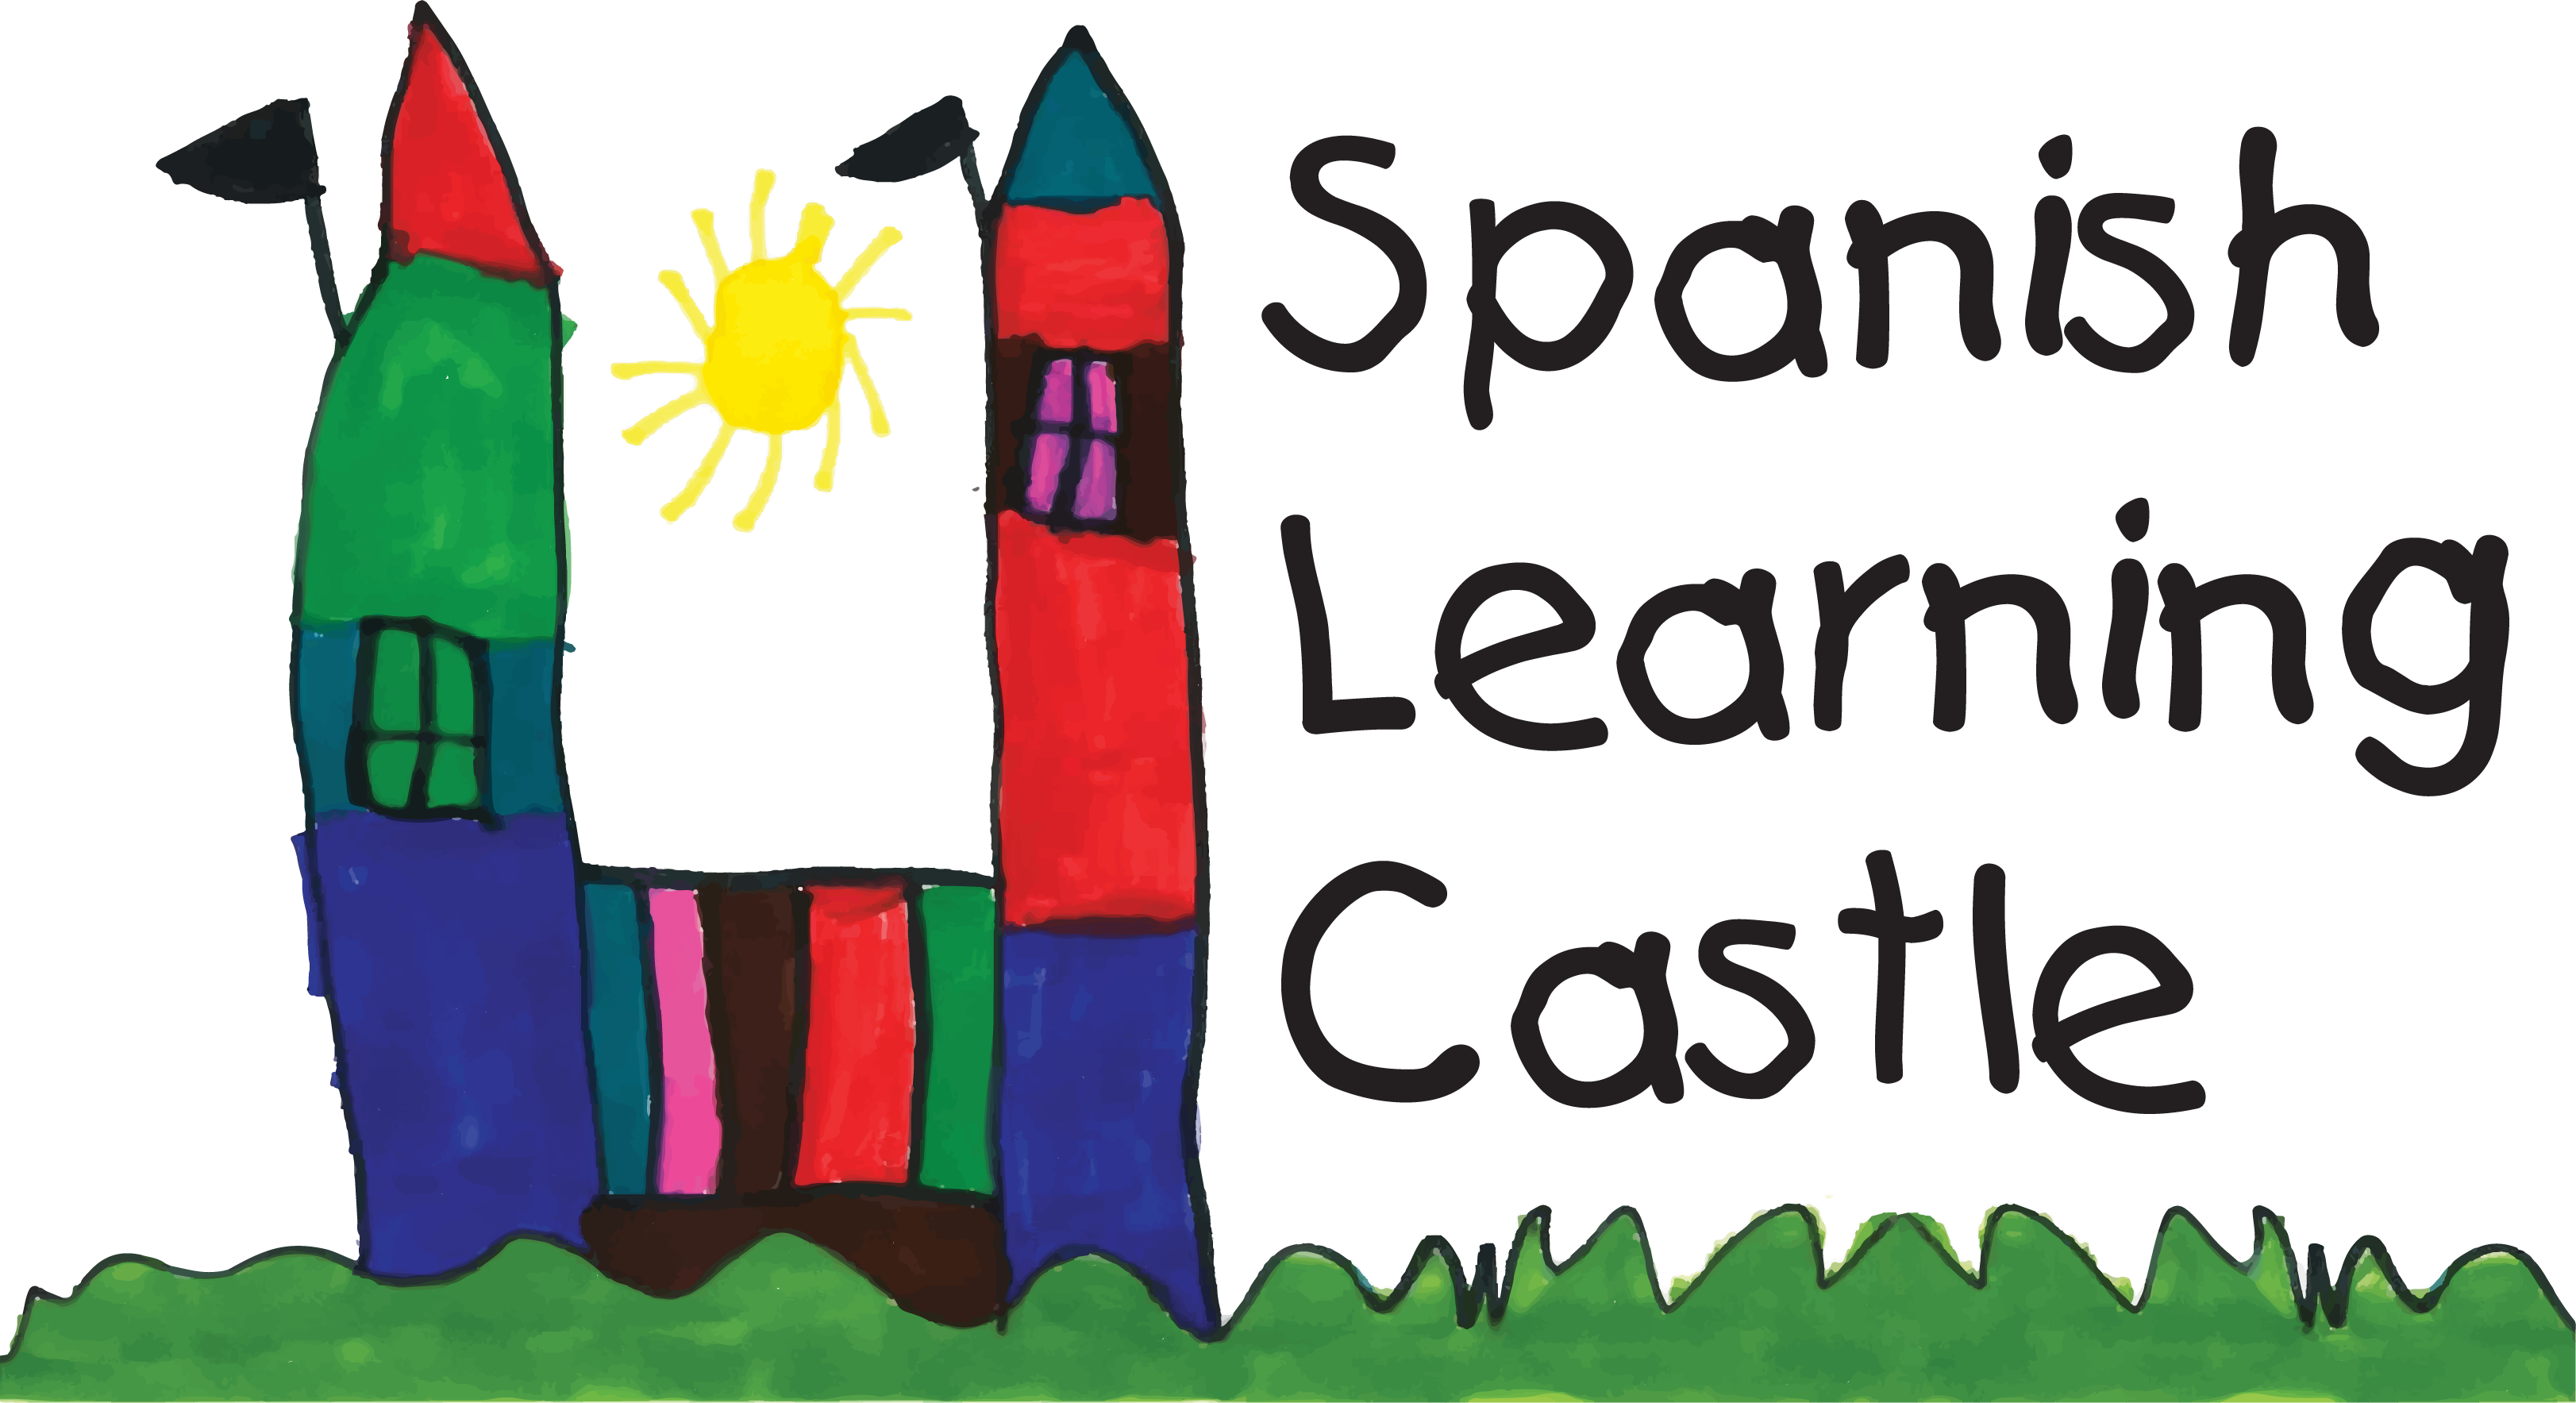 Knowledge clipart book spanish. Pre school katy learning